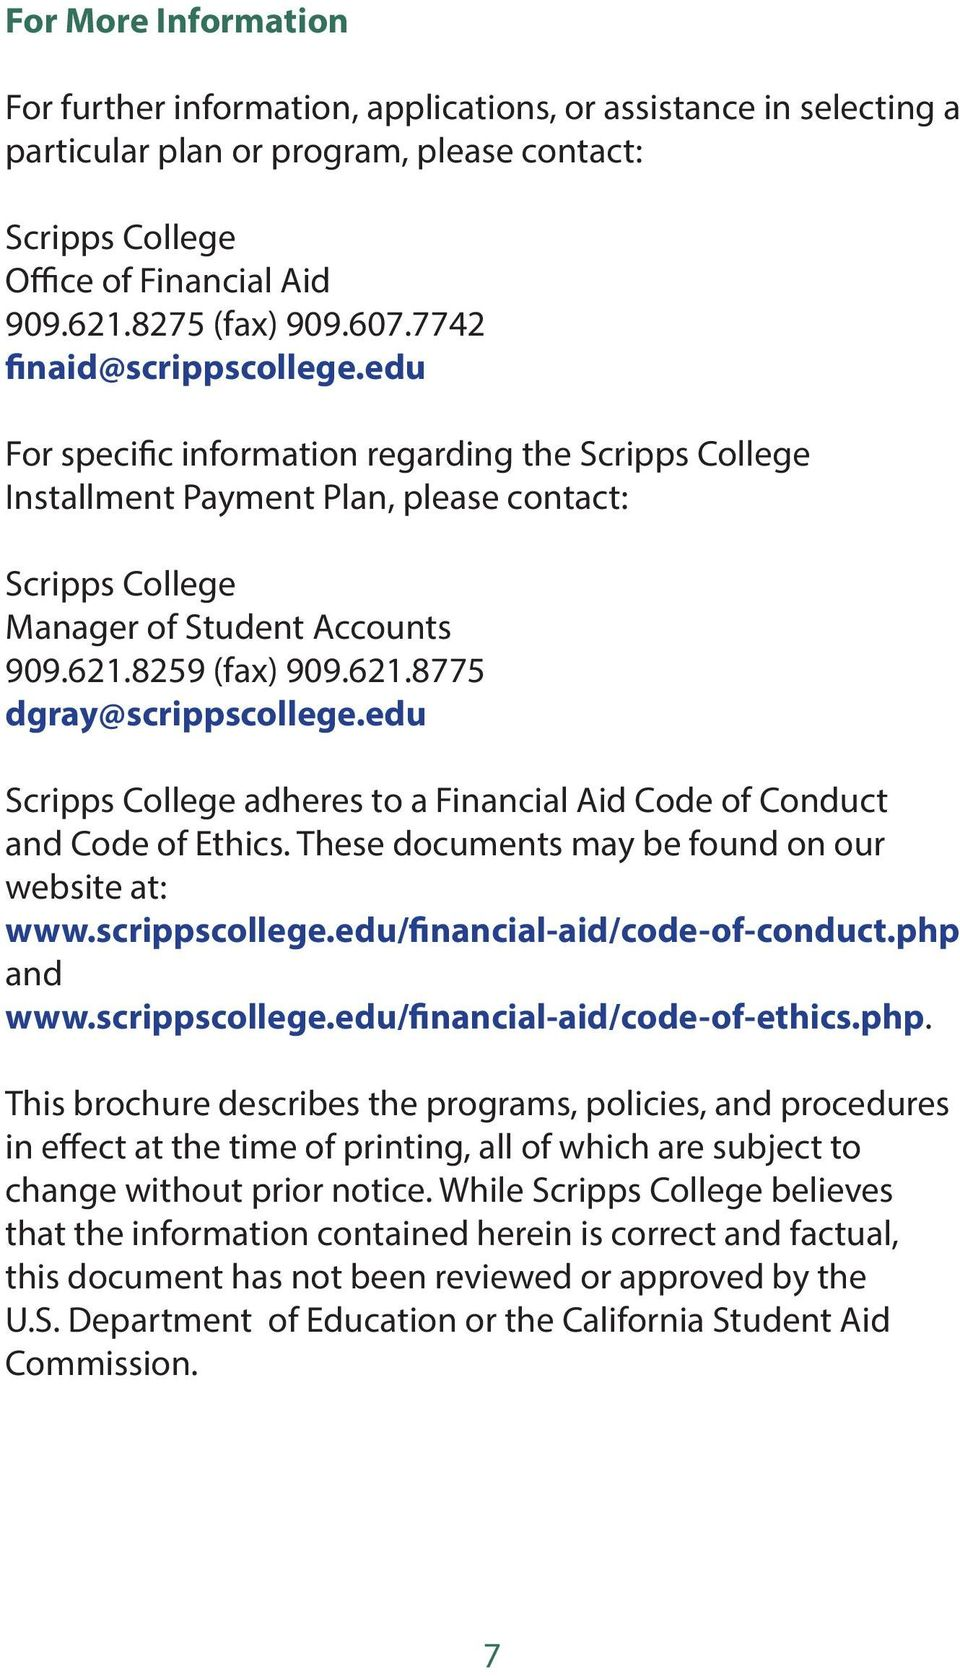 8259 (fax) 909.621.8775 dgray@scrippscollege.edu Scripps College adheres to a Financial Aid Code of Conduct and Code of Ethics. These documents may be found on our website at: www.scrippscollege.edu/financial-aid/code-of-conduct.